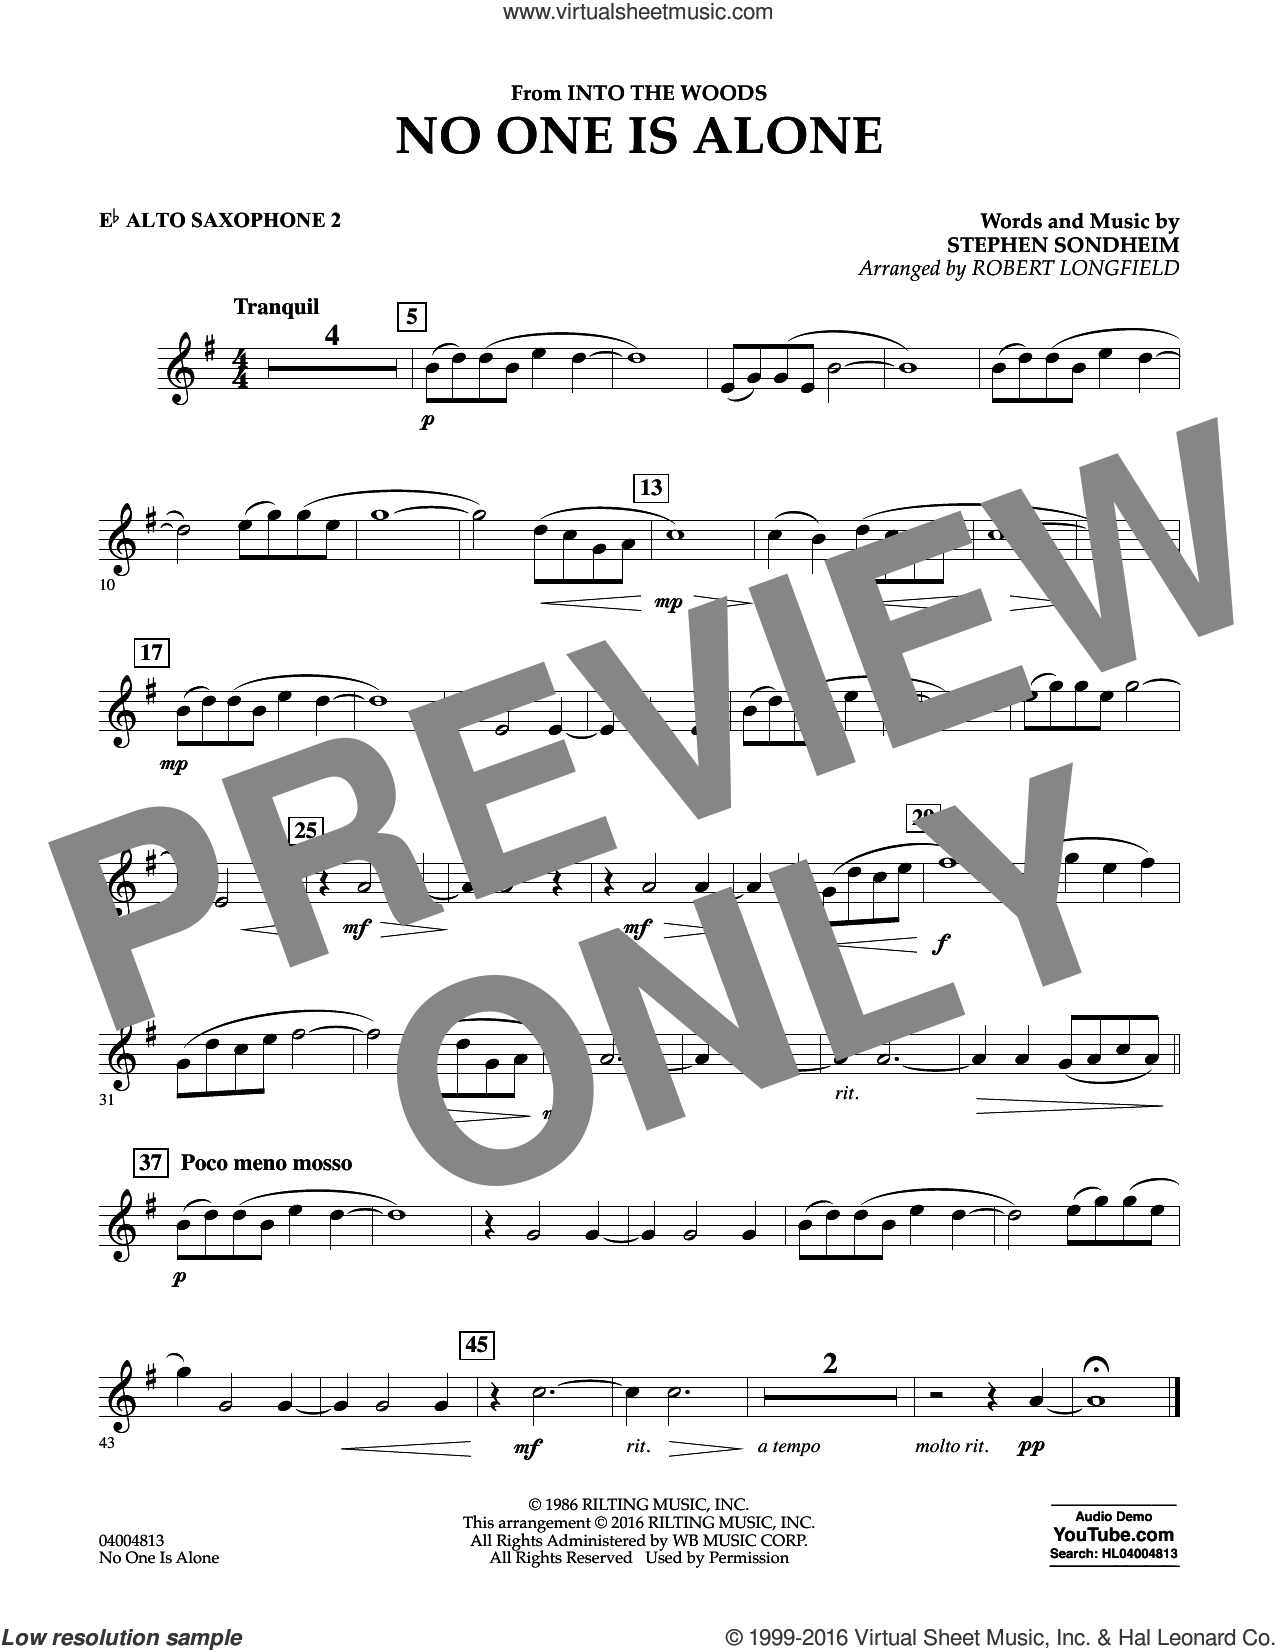 No One Is Alone sheet music for concert band (Eb alto saxophone 2) by Stephen Sondheim and Robert Longfield, intermediate skill level